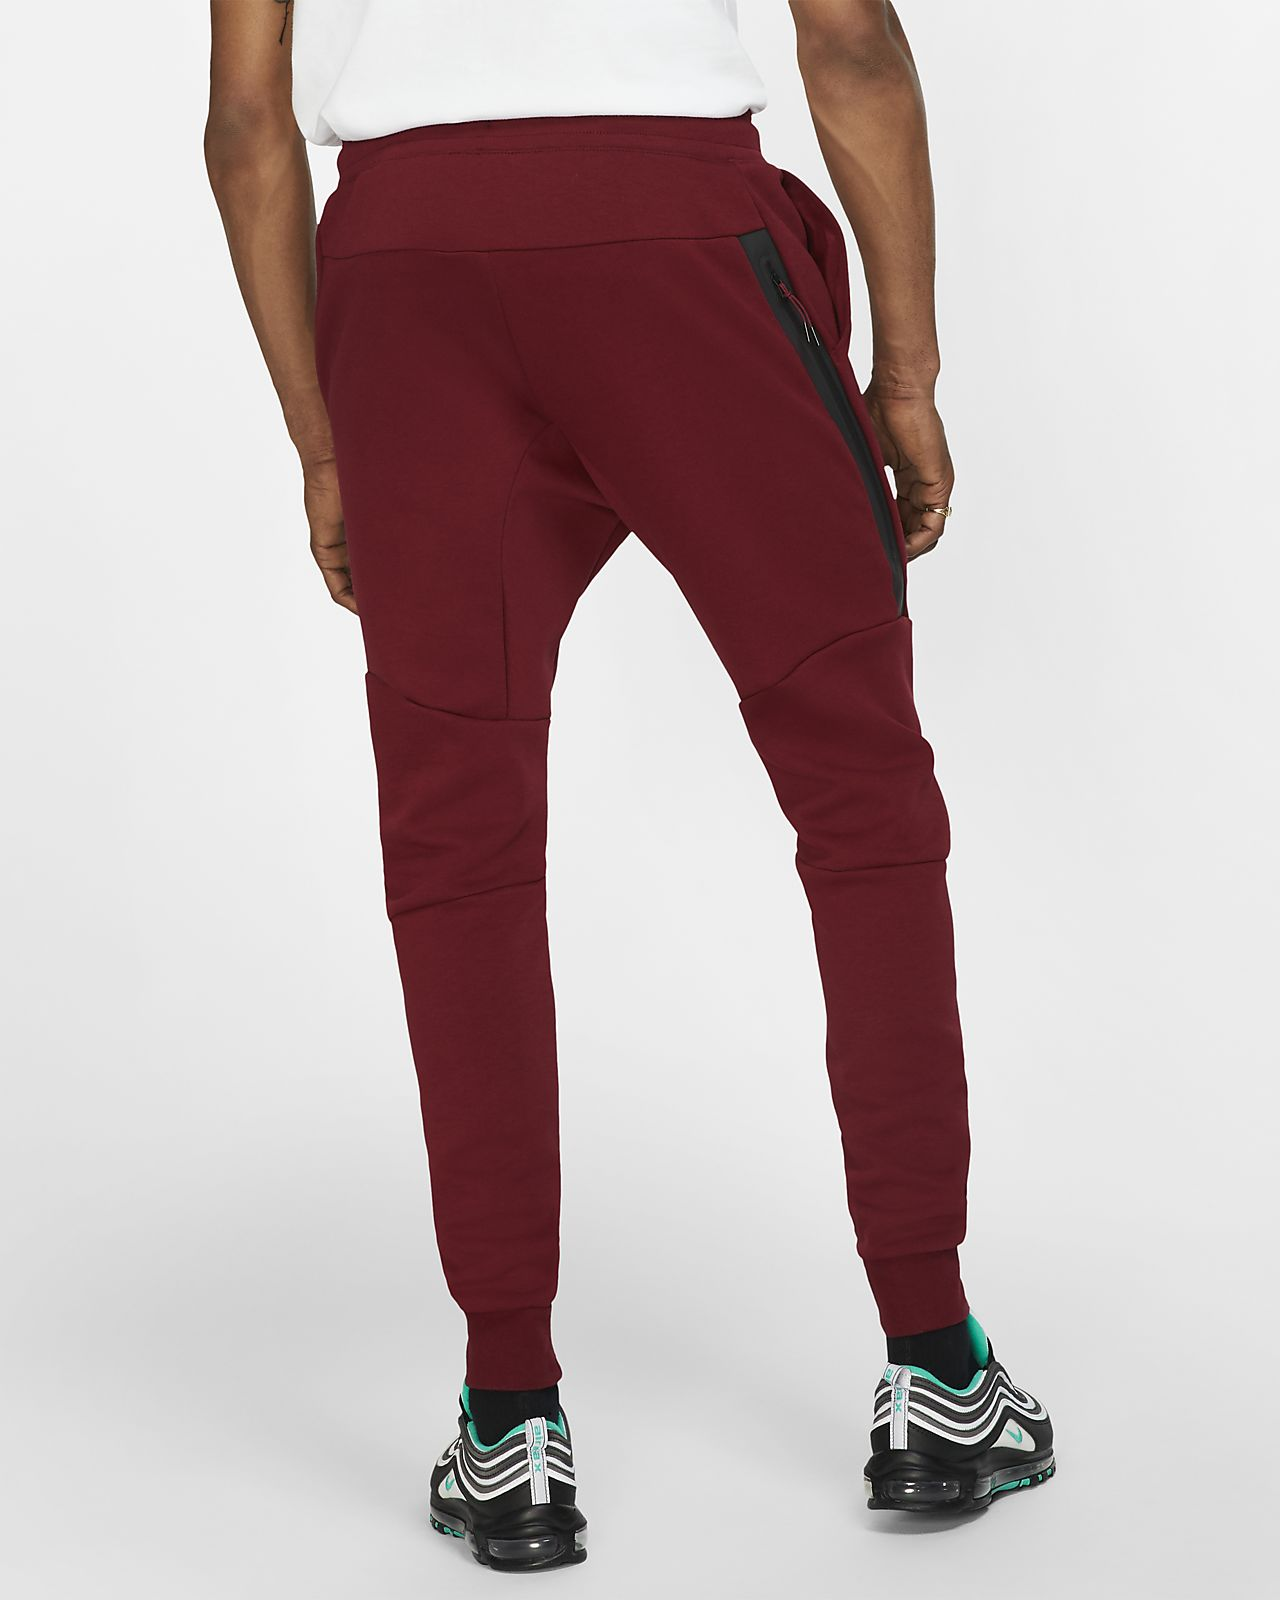 796b62d5 Nike Sportswear Tech Fleece Men's Joggers. Nike.com CA